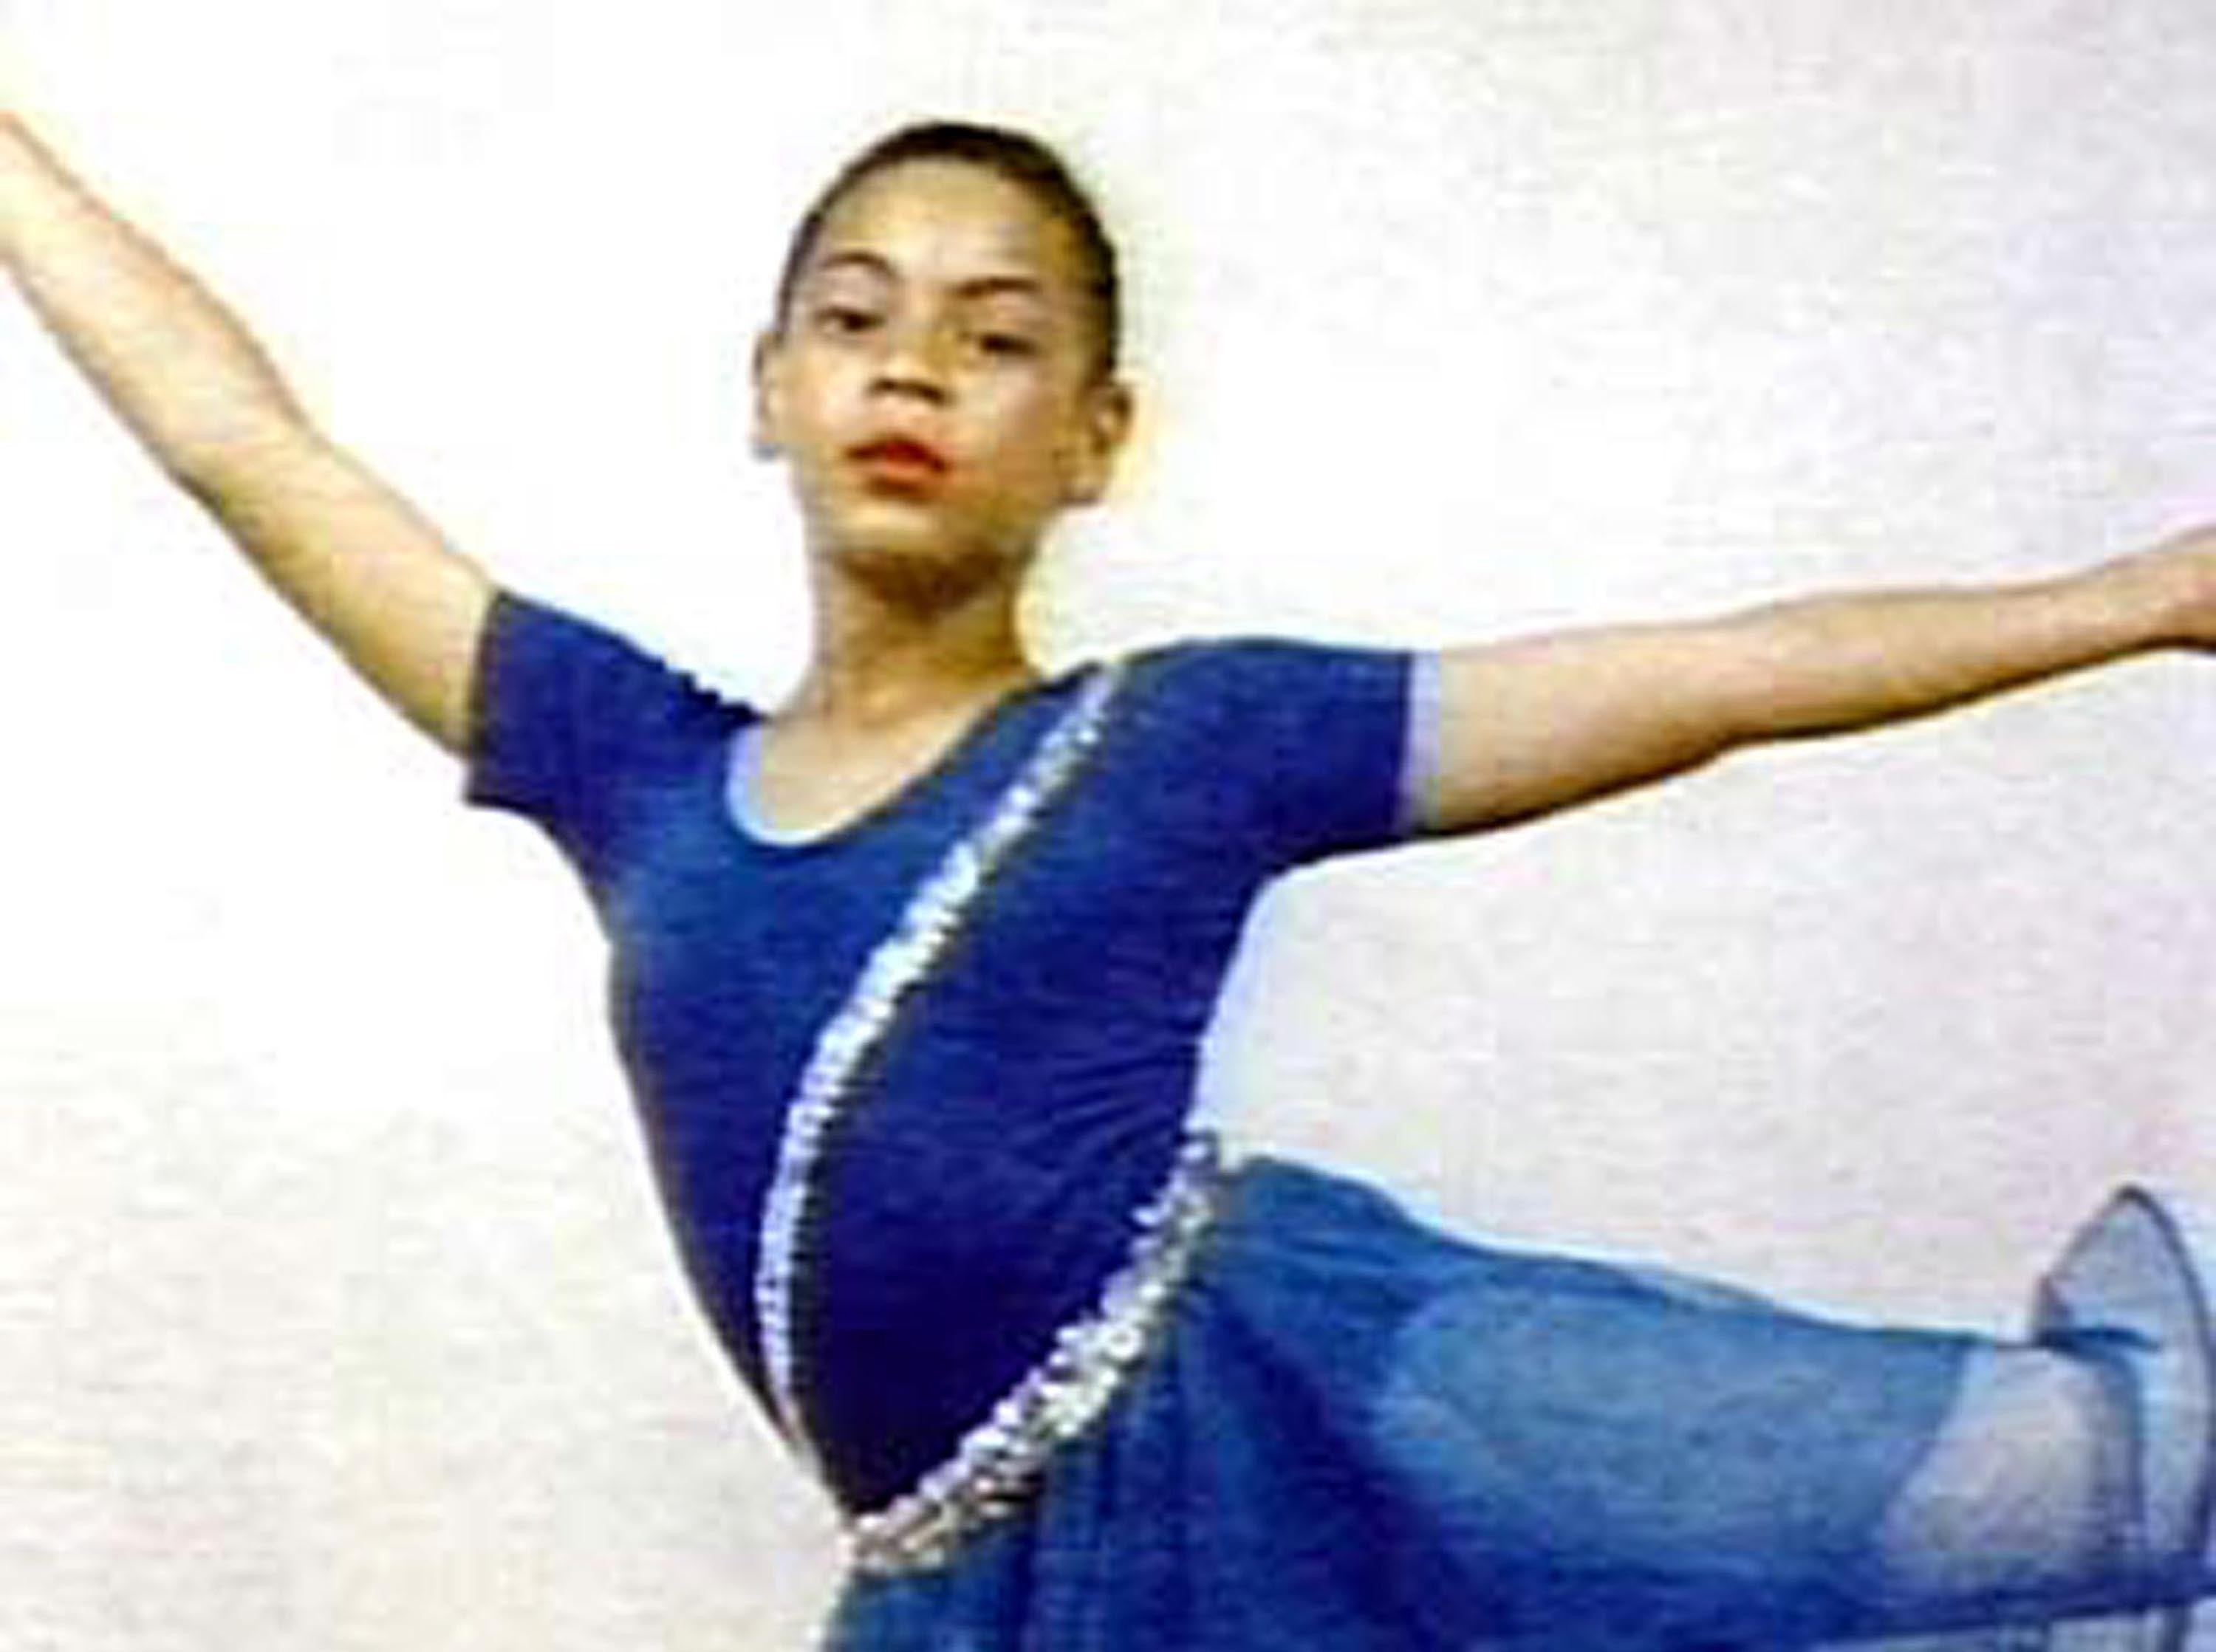 beyonce before famous